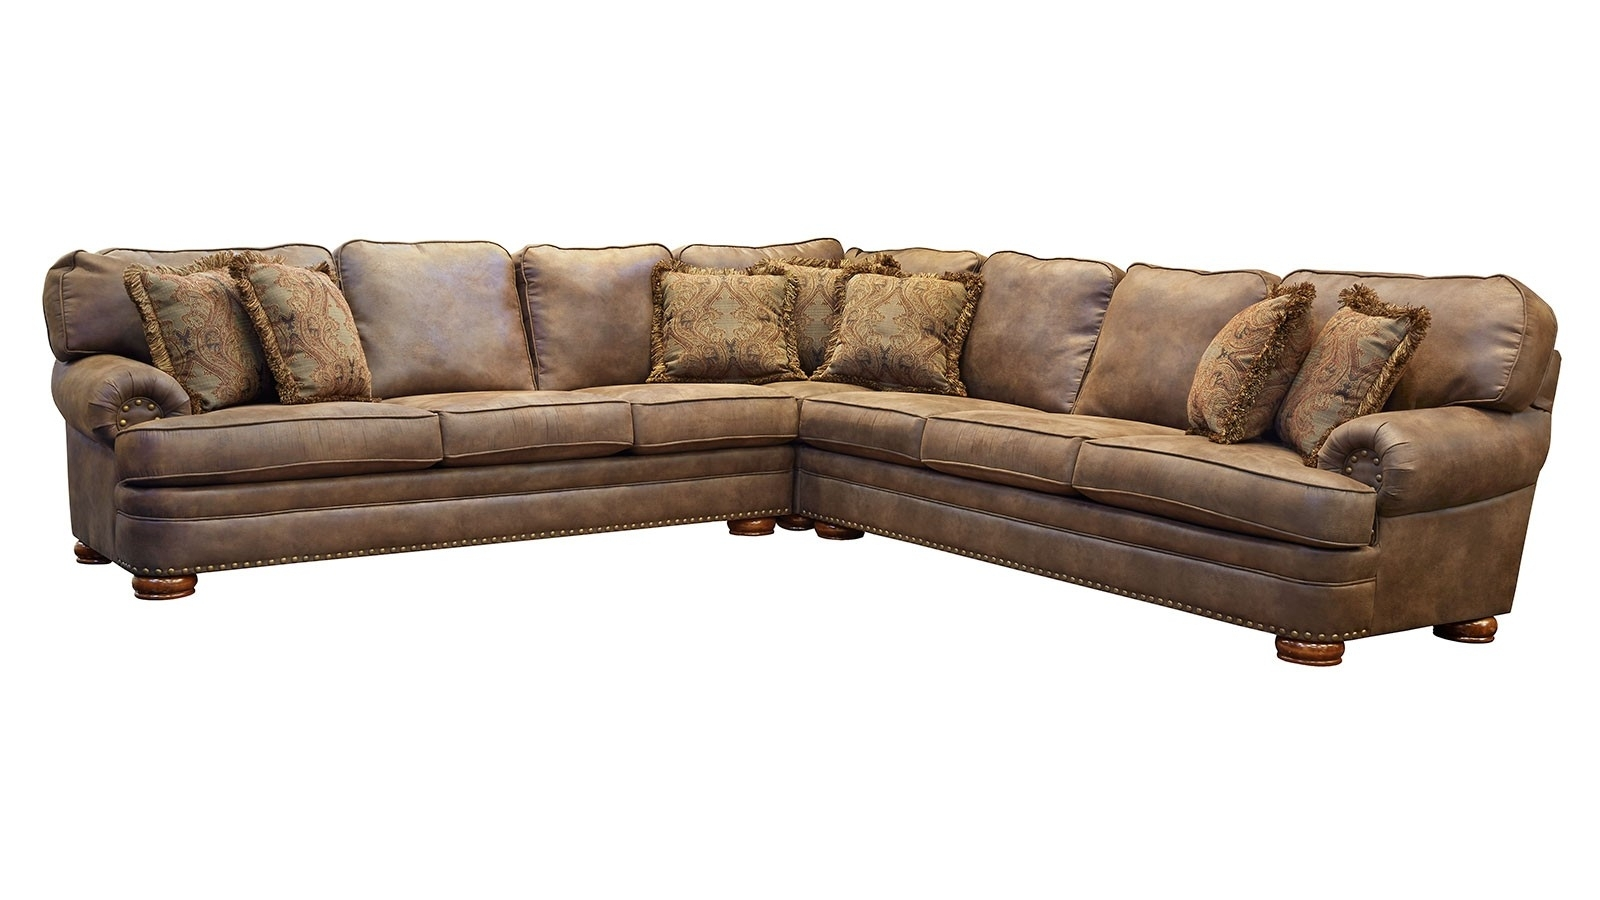 El Paso Sectional | Gallery Furniture In El Paso Texas Sectional Sofas (View 10 of 10)